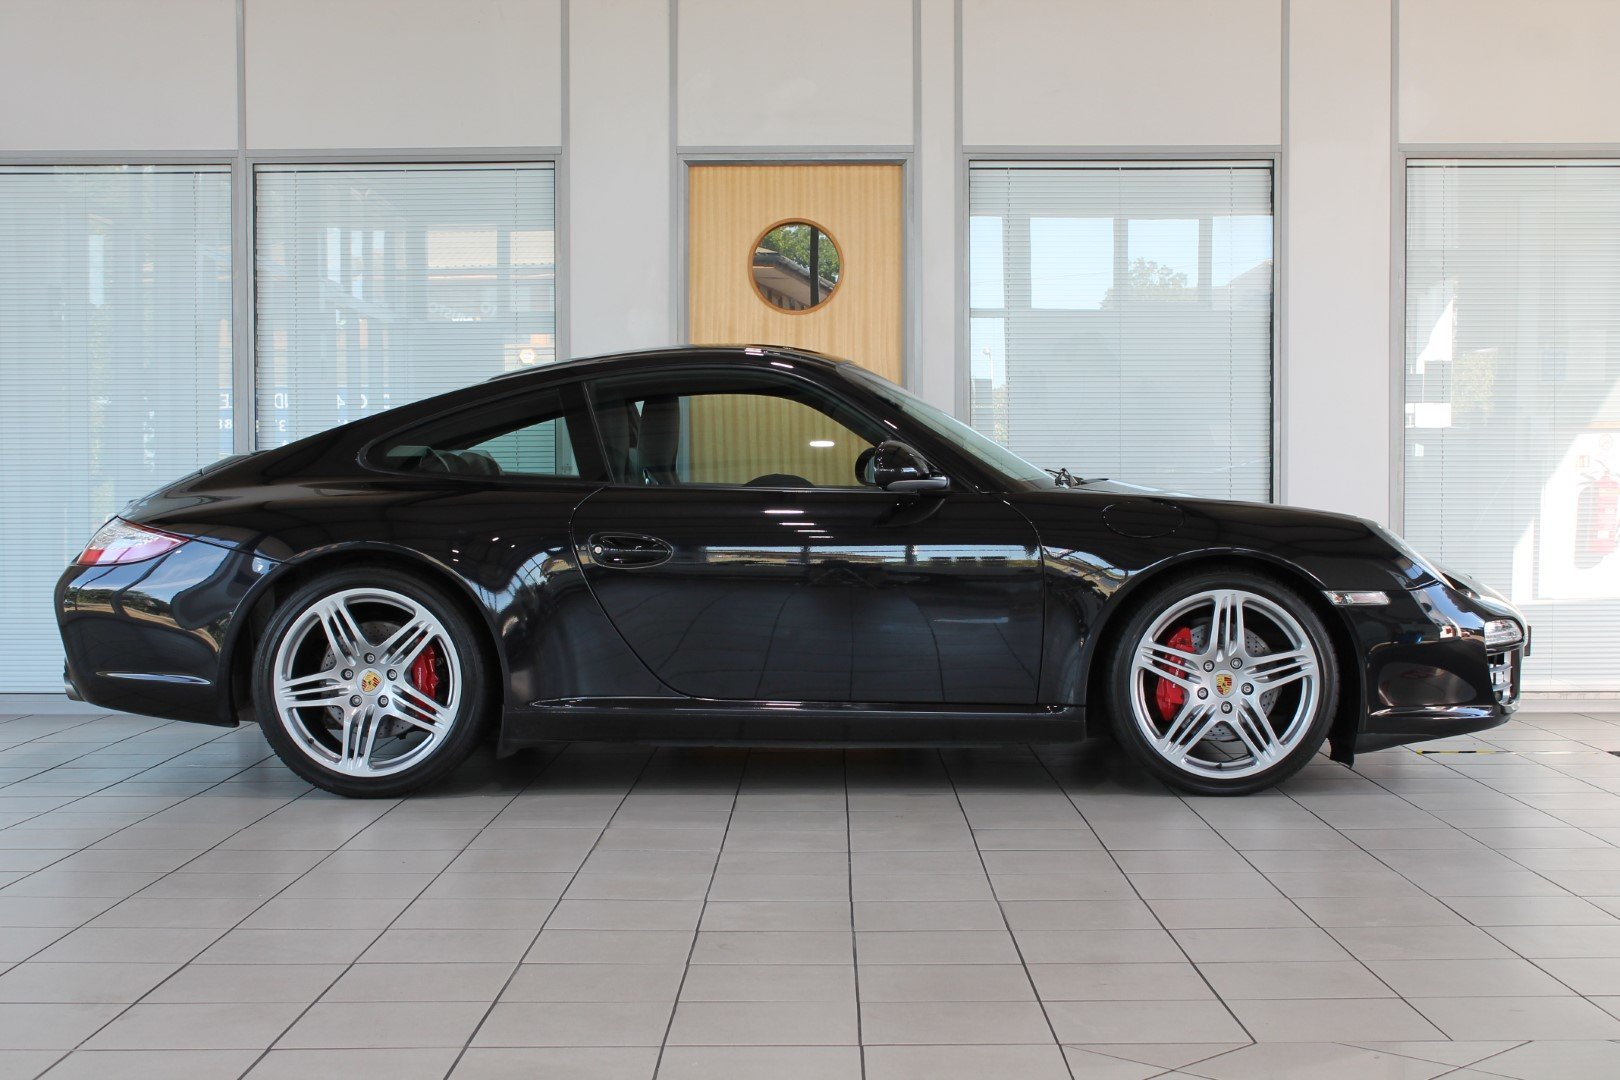 2010 Porsche 911 (997) 3.8 S PDK Coupe For Sale (picture 3 of 6)